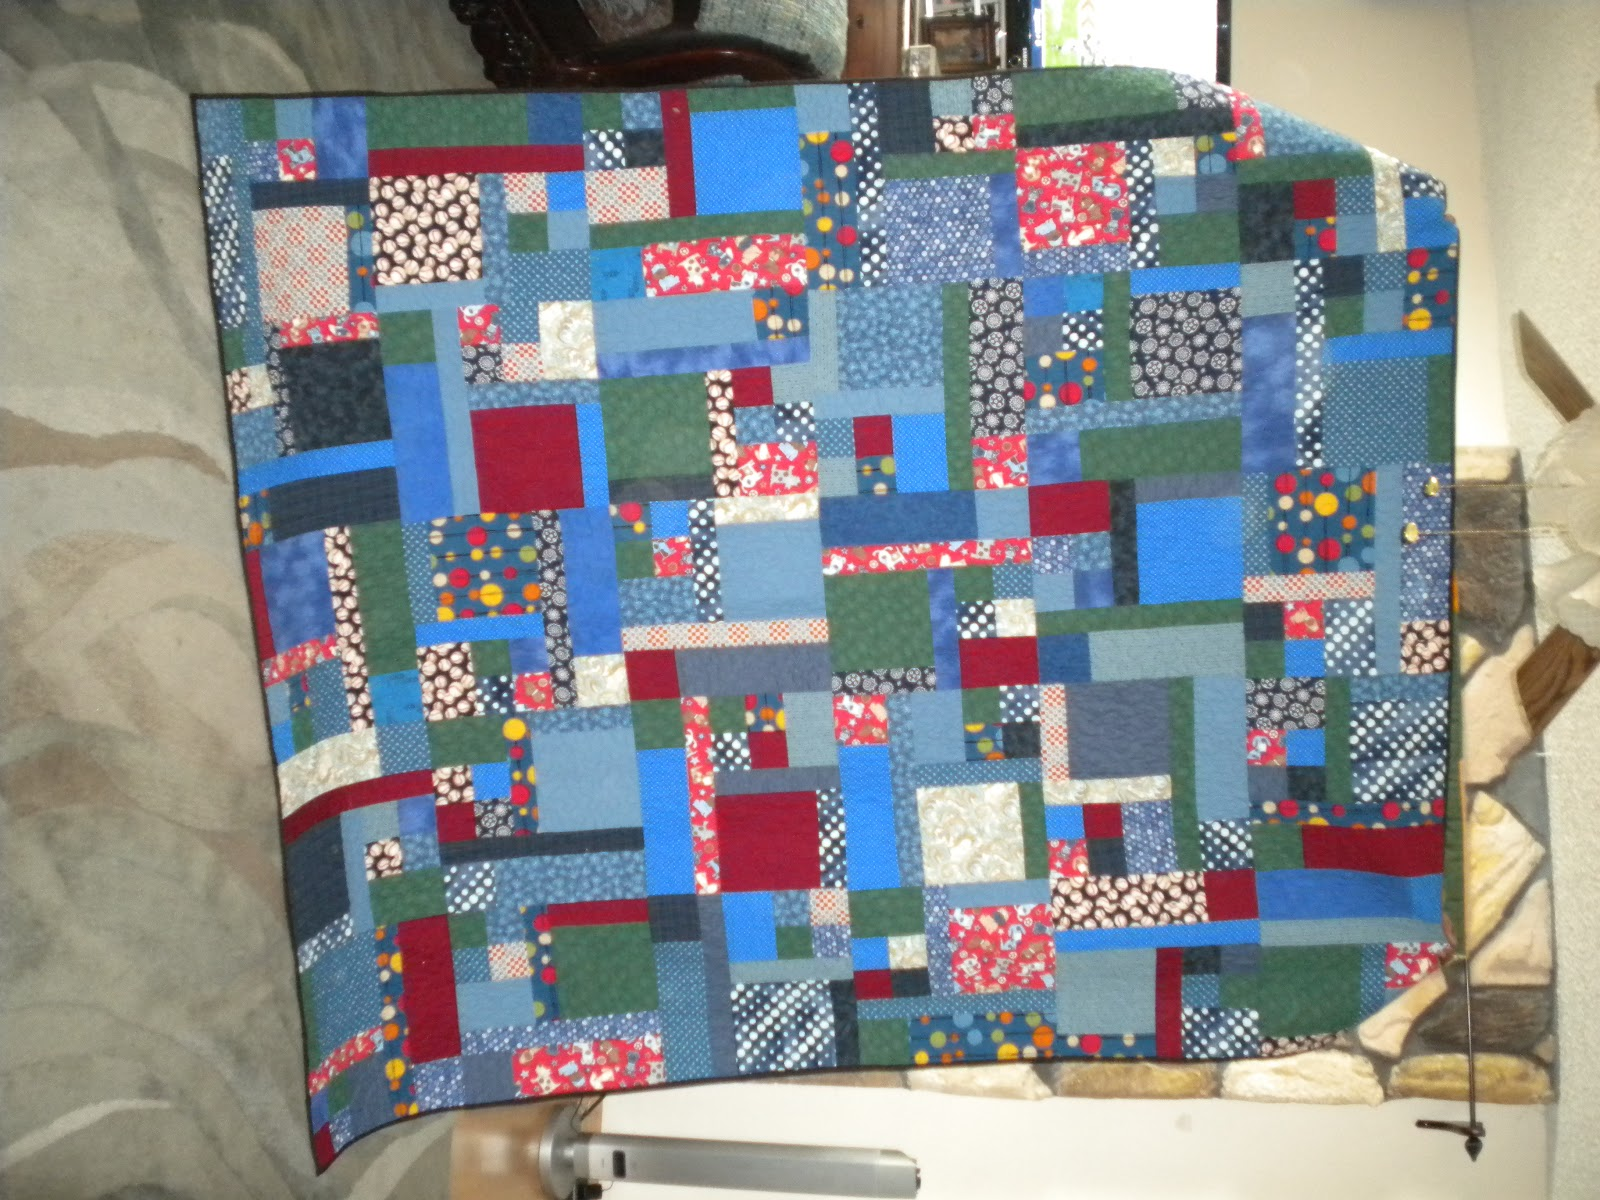 washable s to quilt quilting quilts your elmers cheap california baste glue school using elmer